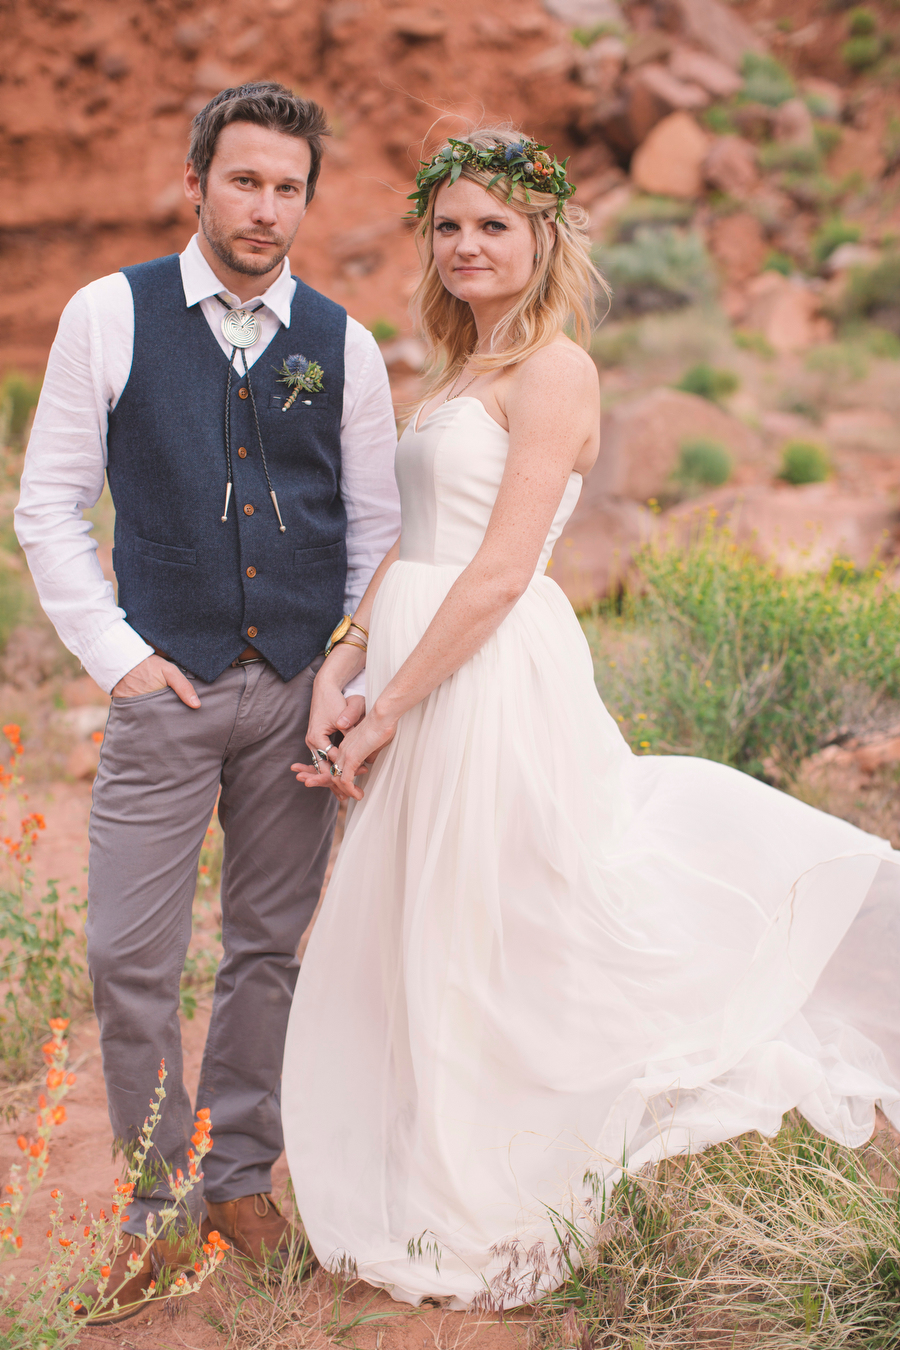 MARIACORONAPHOTOGRAPHY_MOAB_WEDDING_077.JPG